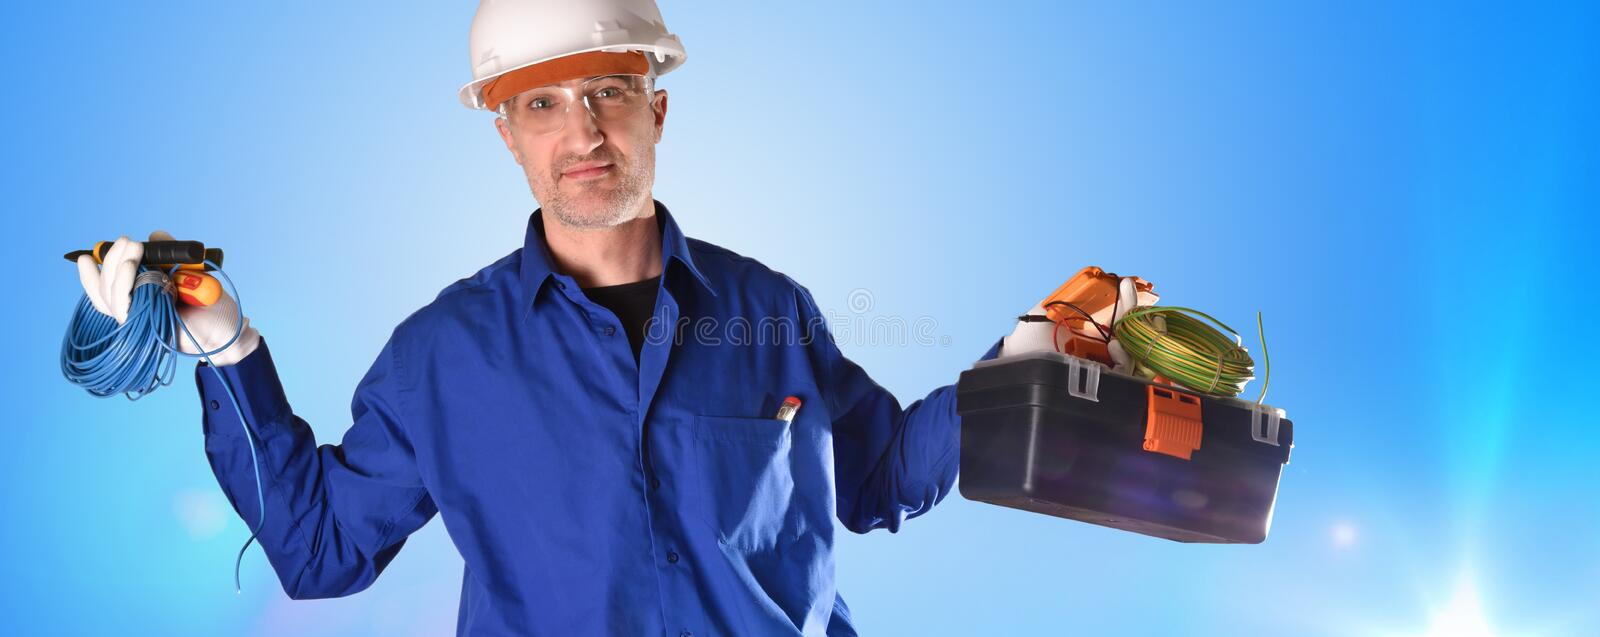 Uniformed electrician with safety protections and work tools with lights royalty free stock image